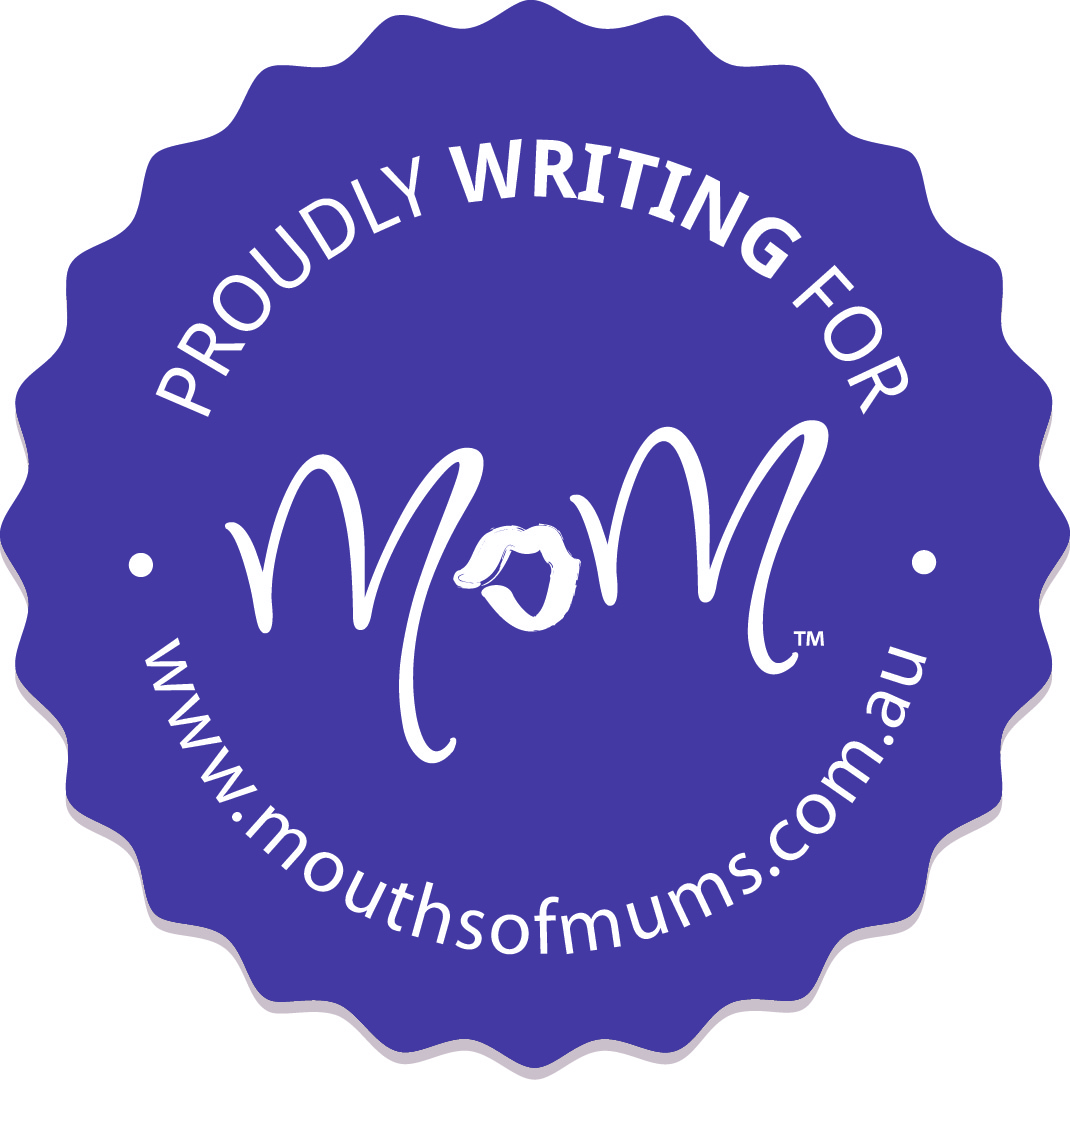 MoM_proudly_writing_for_sticker_print